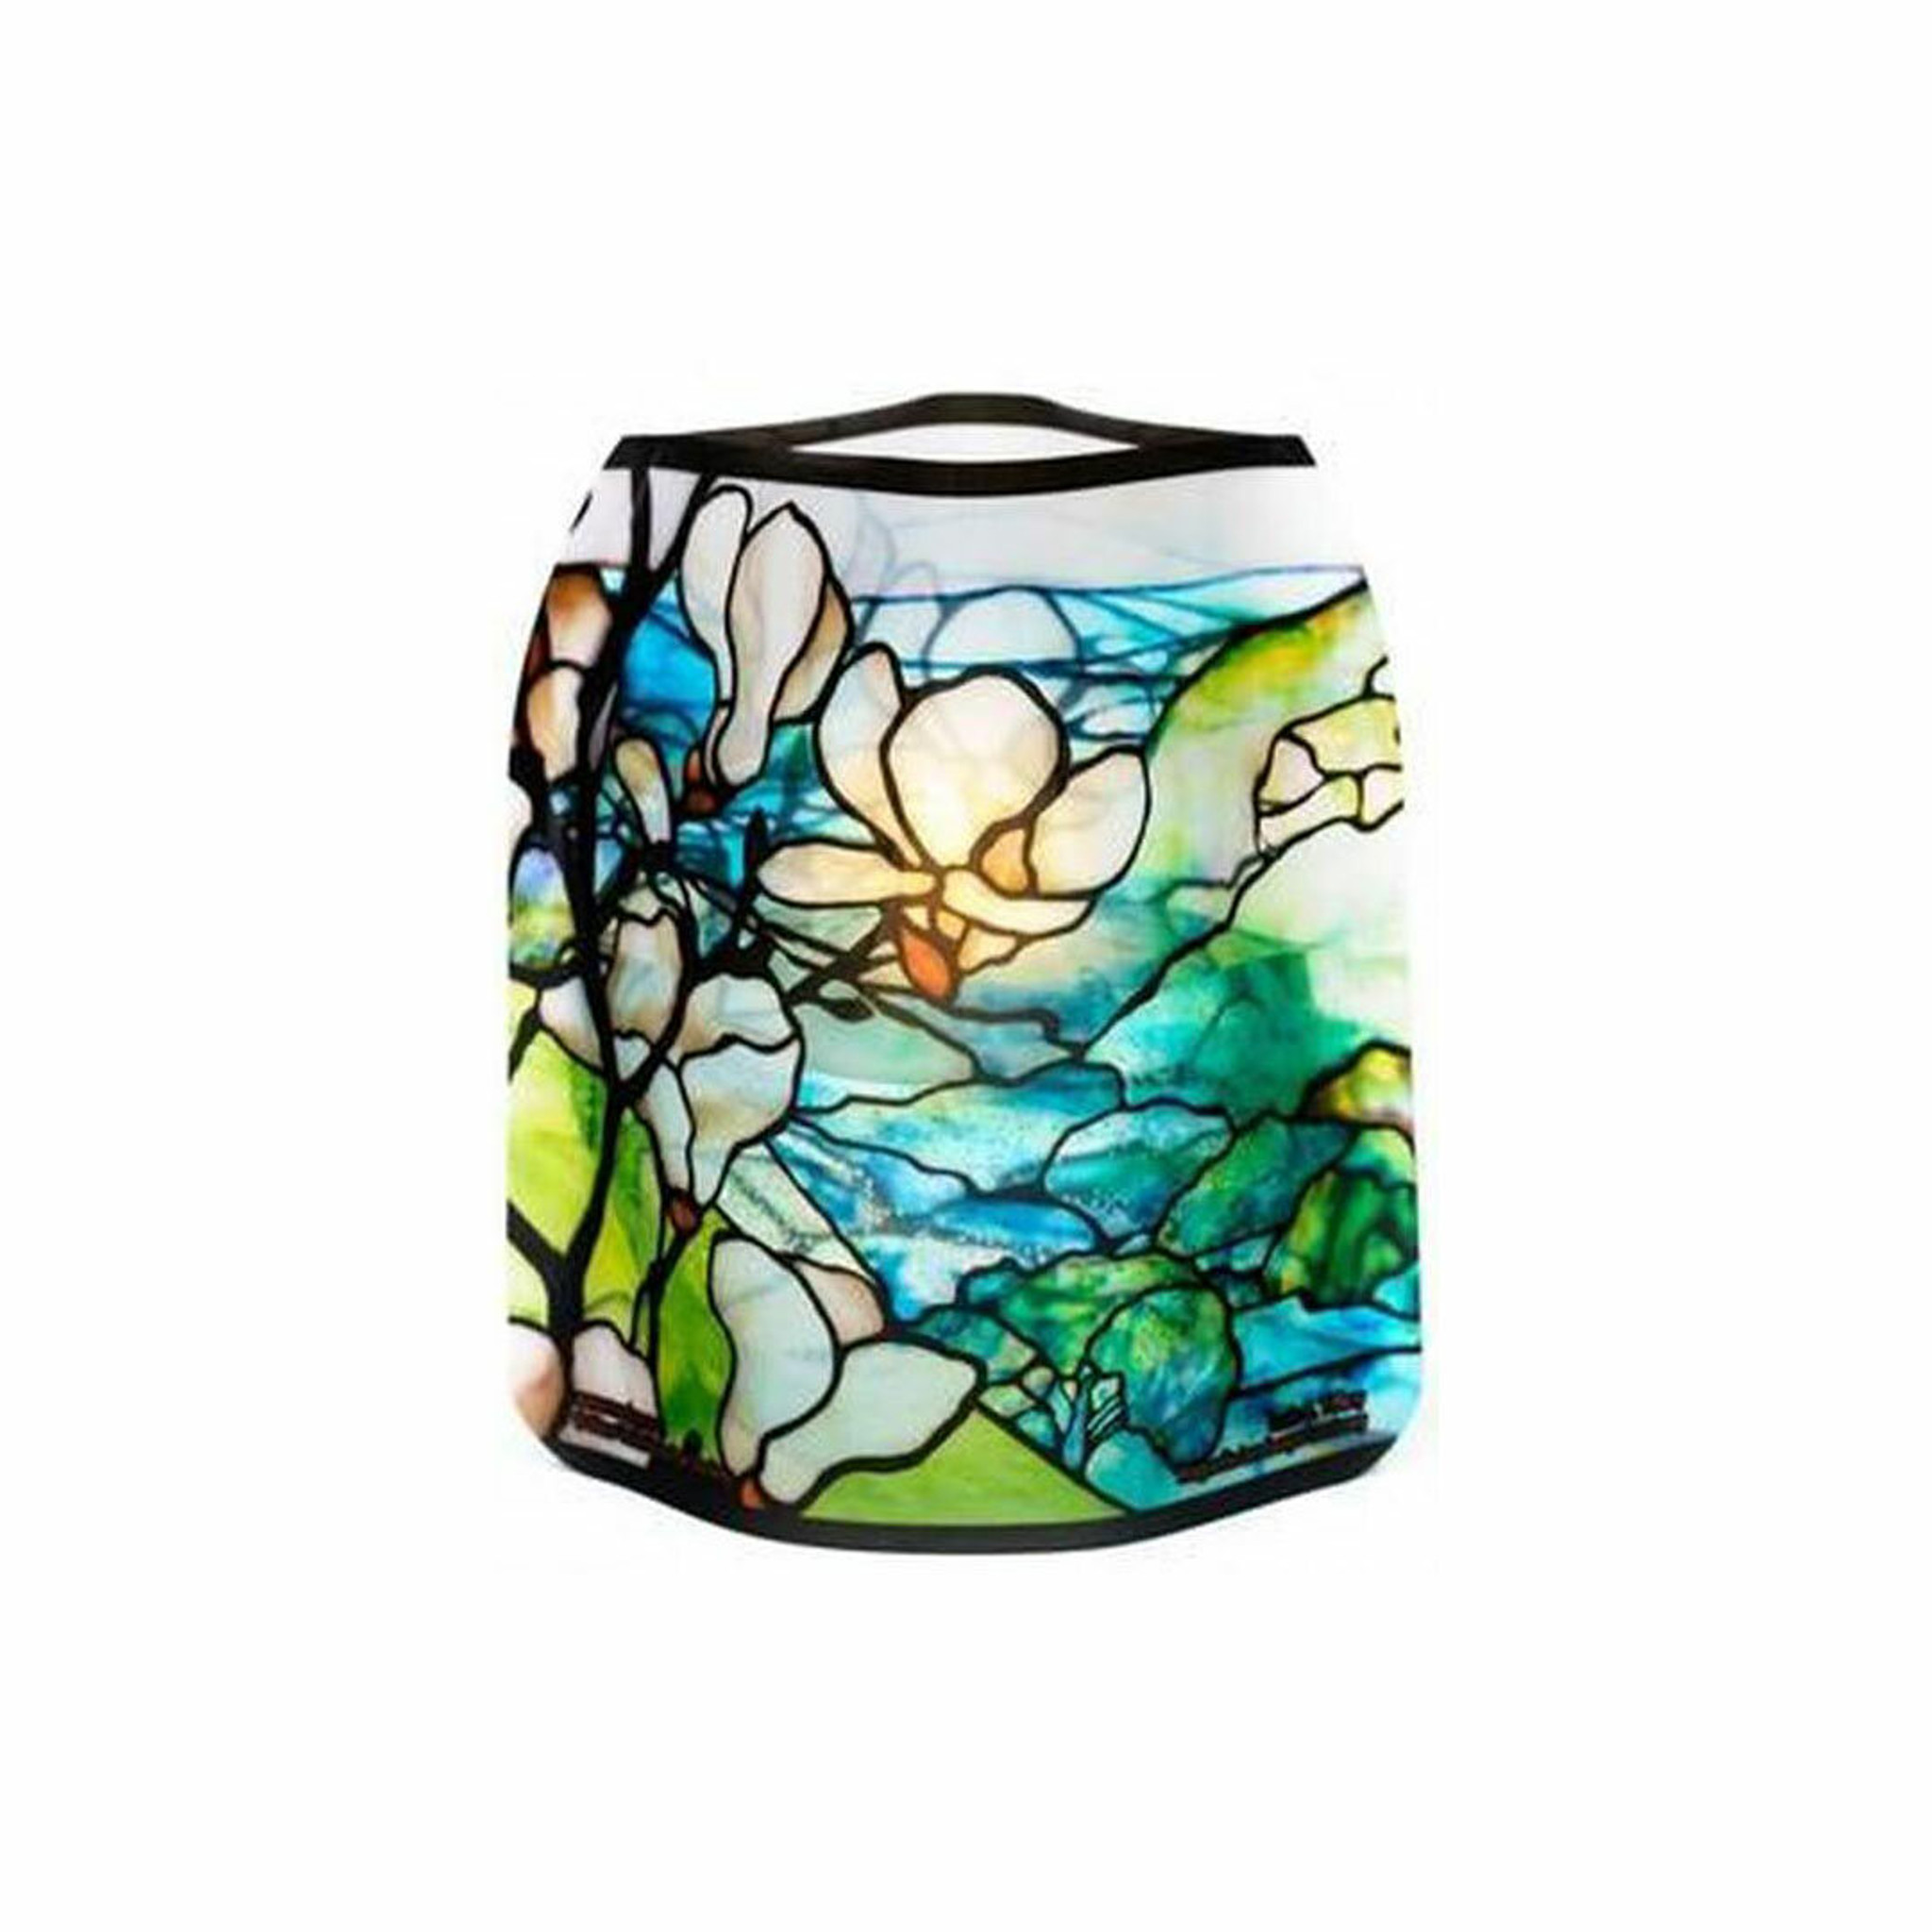 Louis C. Tiffany Magnolia Landscape Luminaries & Water-Activated Floating LED Candles